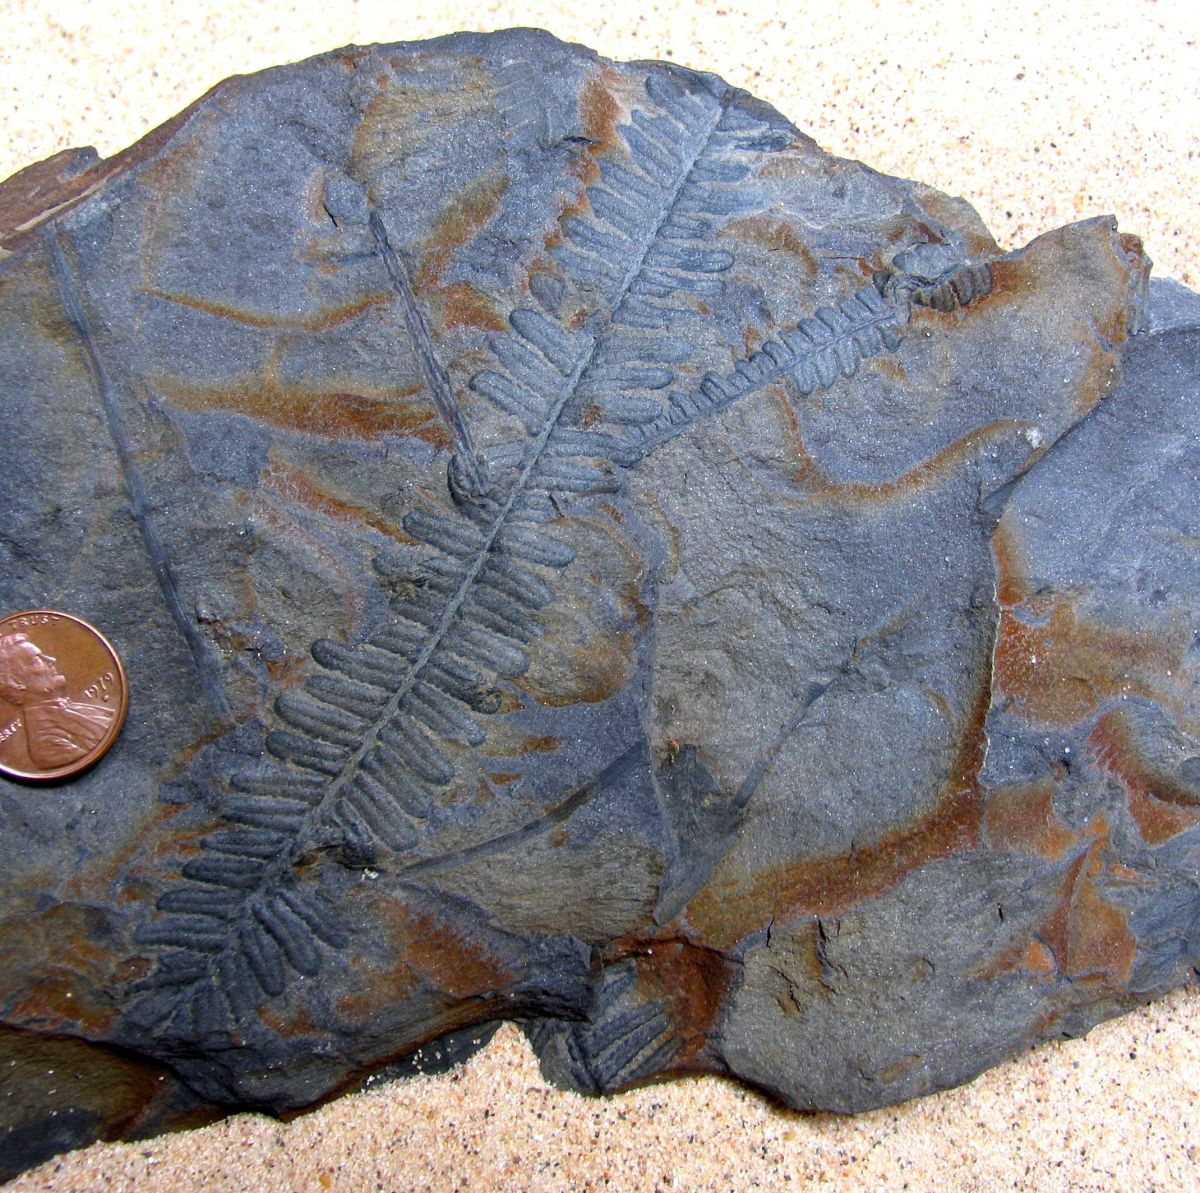 PECOPTERIS TRACE FOSSIL LEAVES OF ANCIENT PSARONIUS FERN TREE